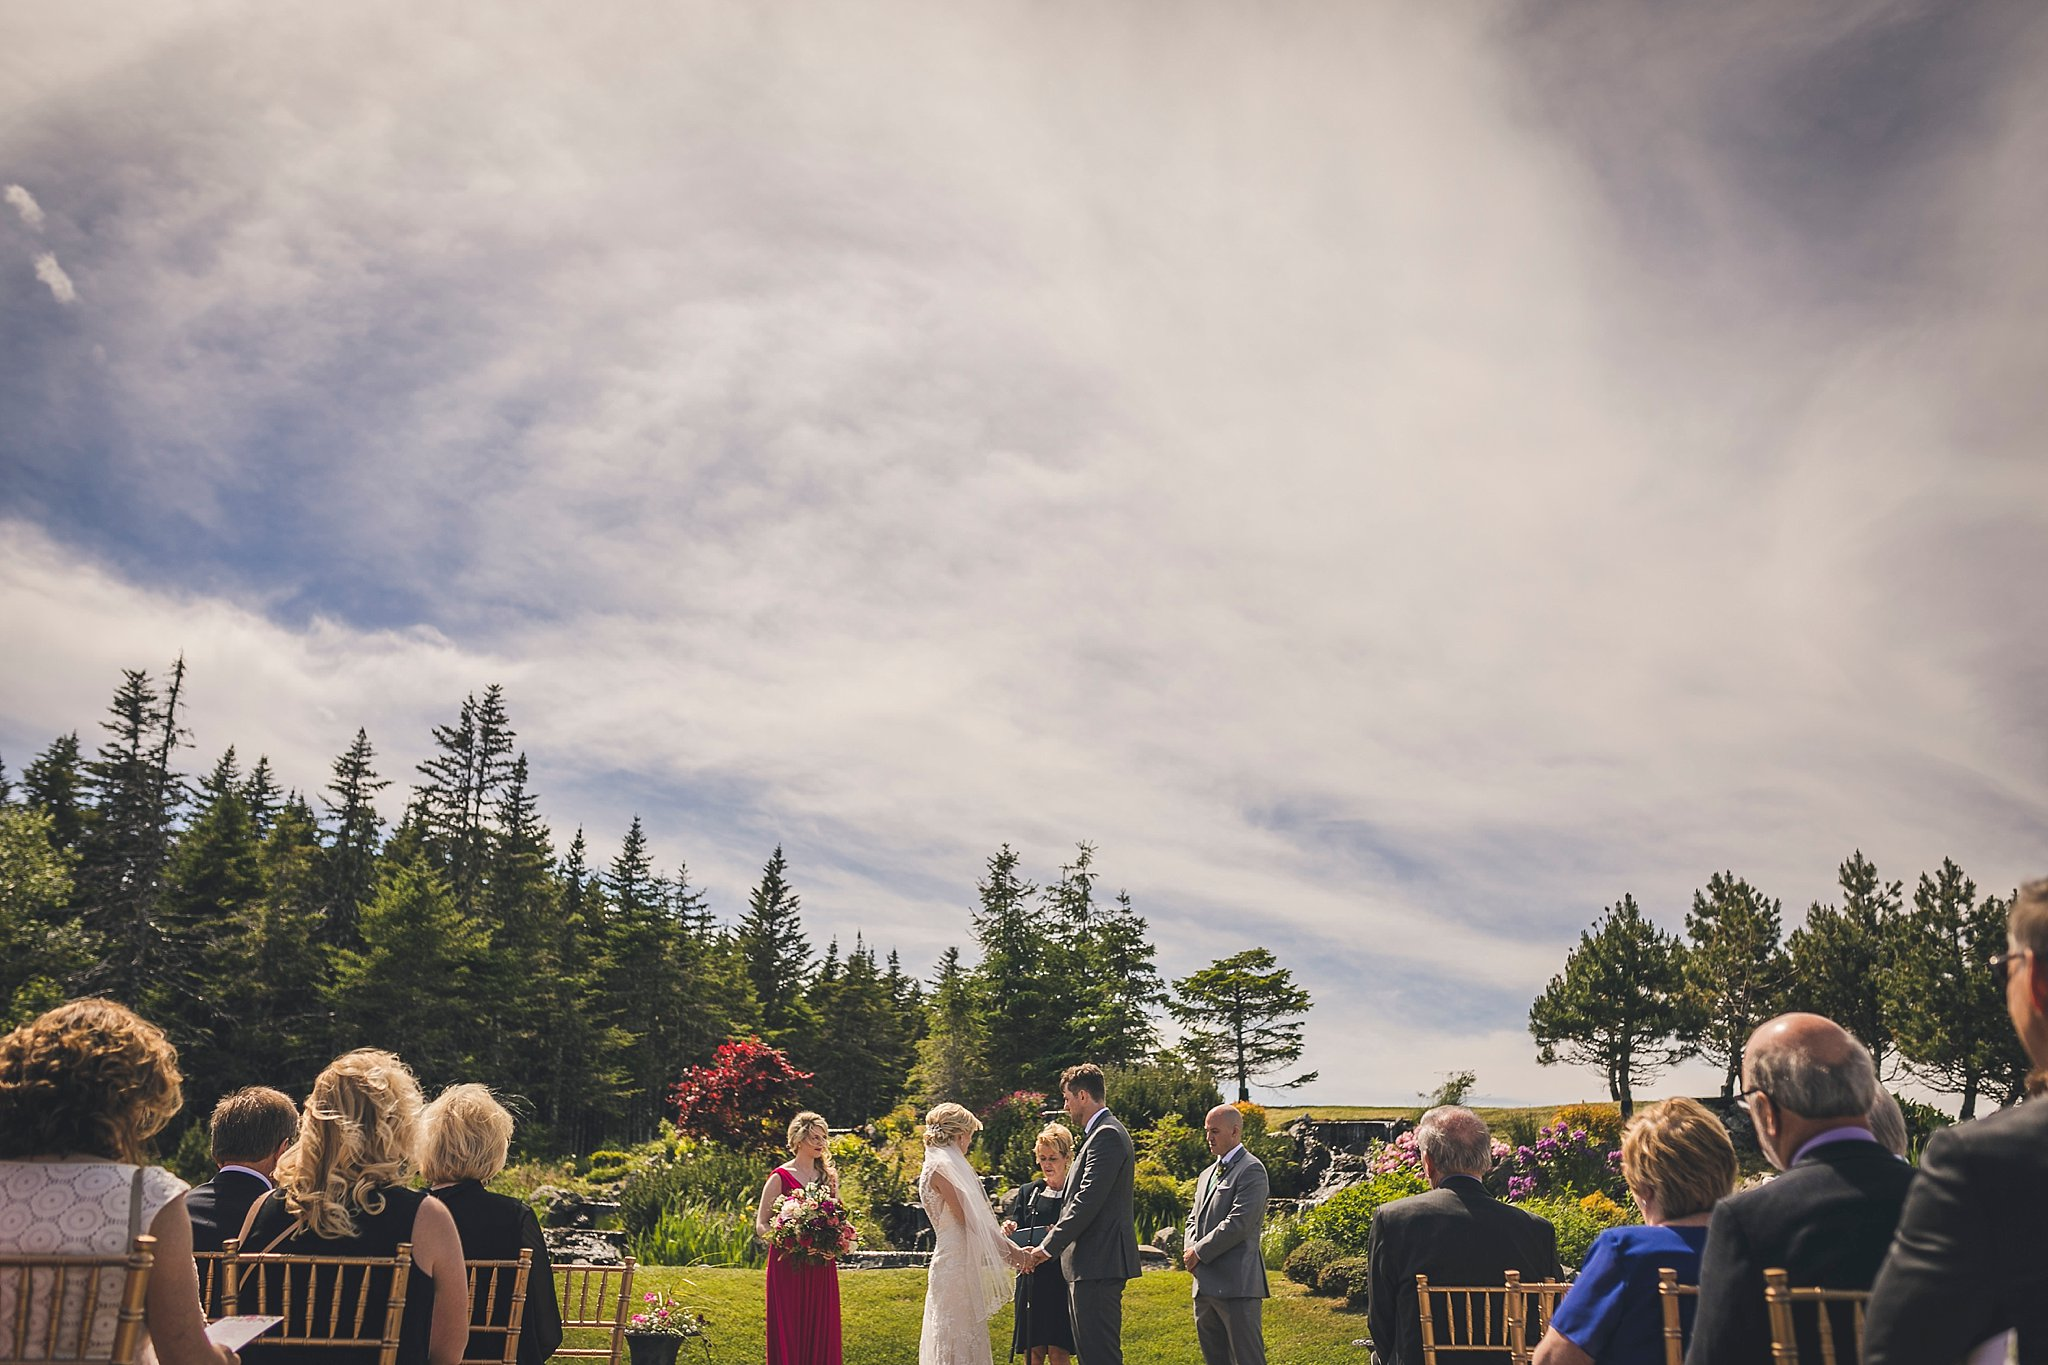 Outside wedding ceremony at Glendenning in St. John's, Newfoundland